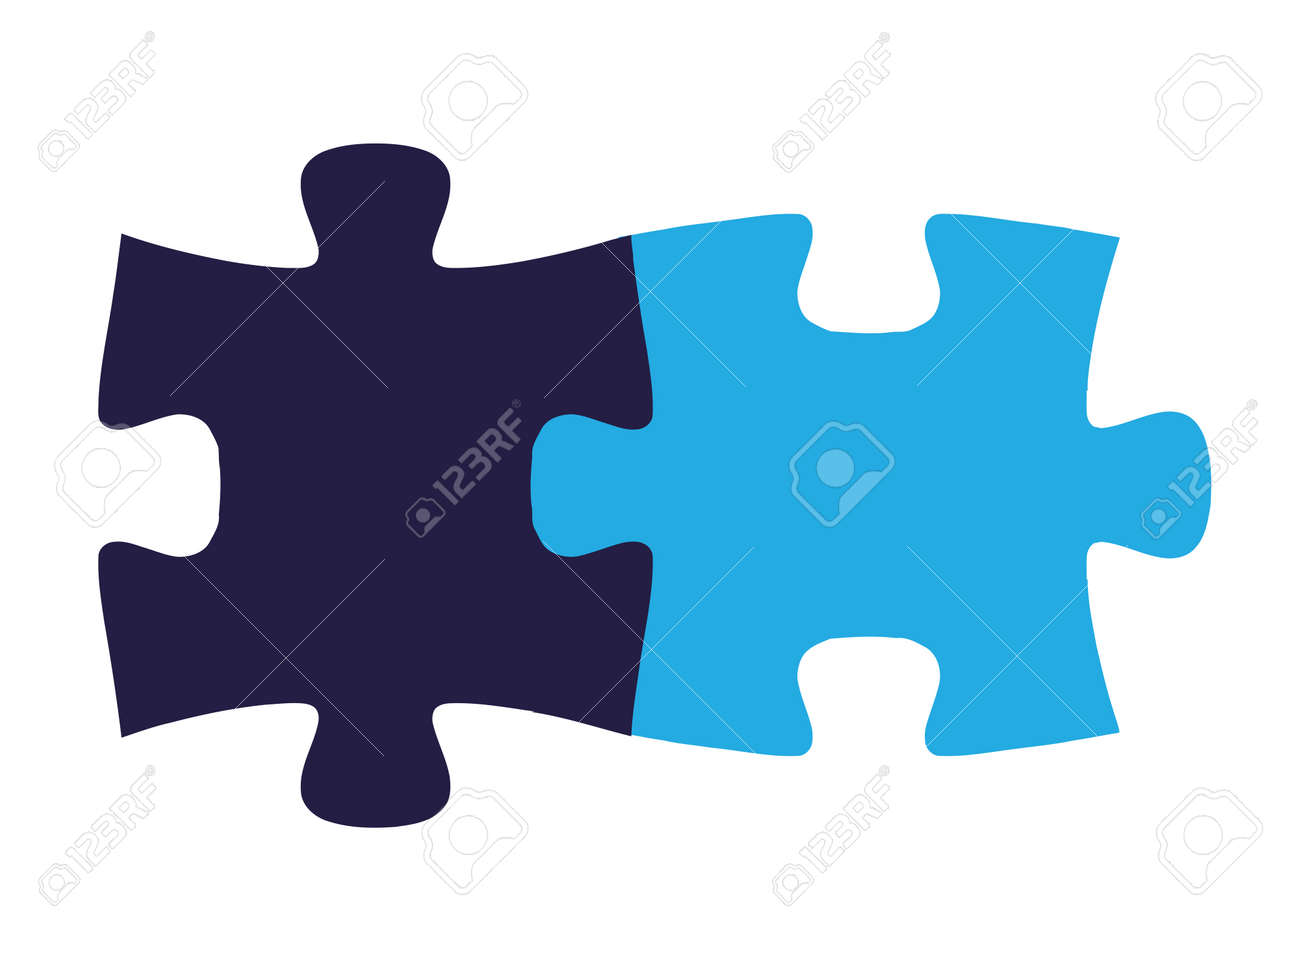 Isolated Puzzle Pieces Fit Together On All Sides Seamlessly Stock Vector